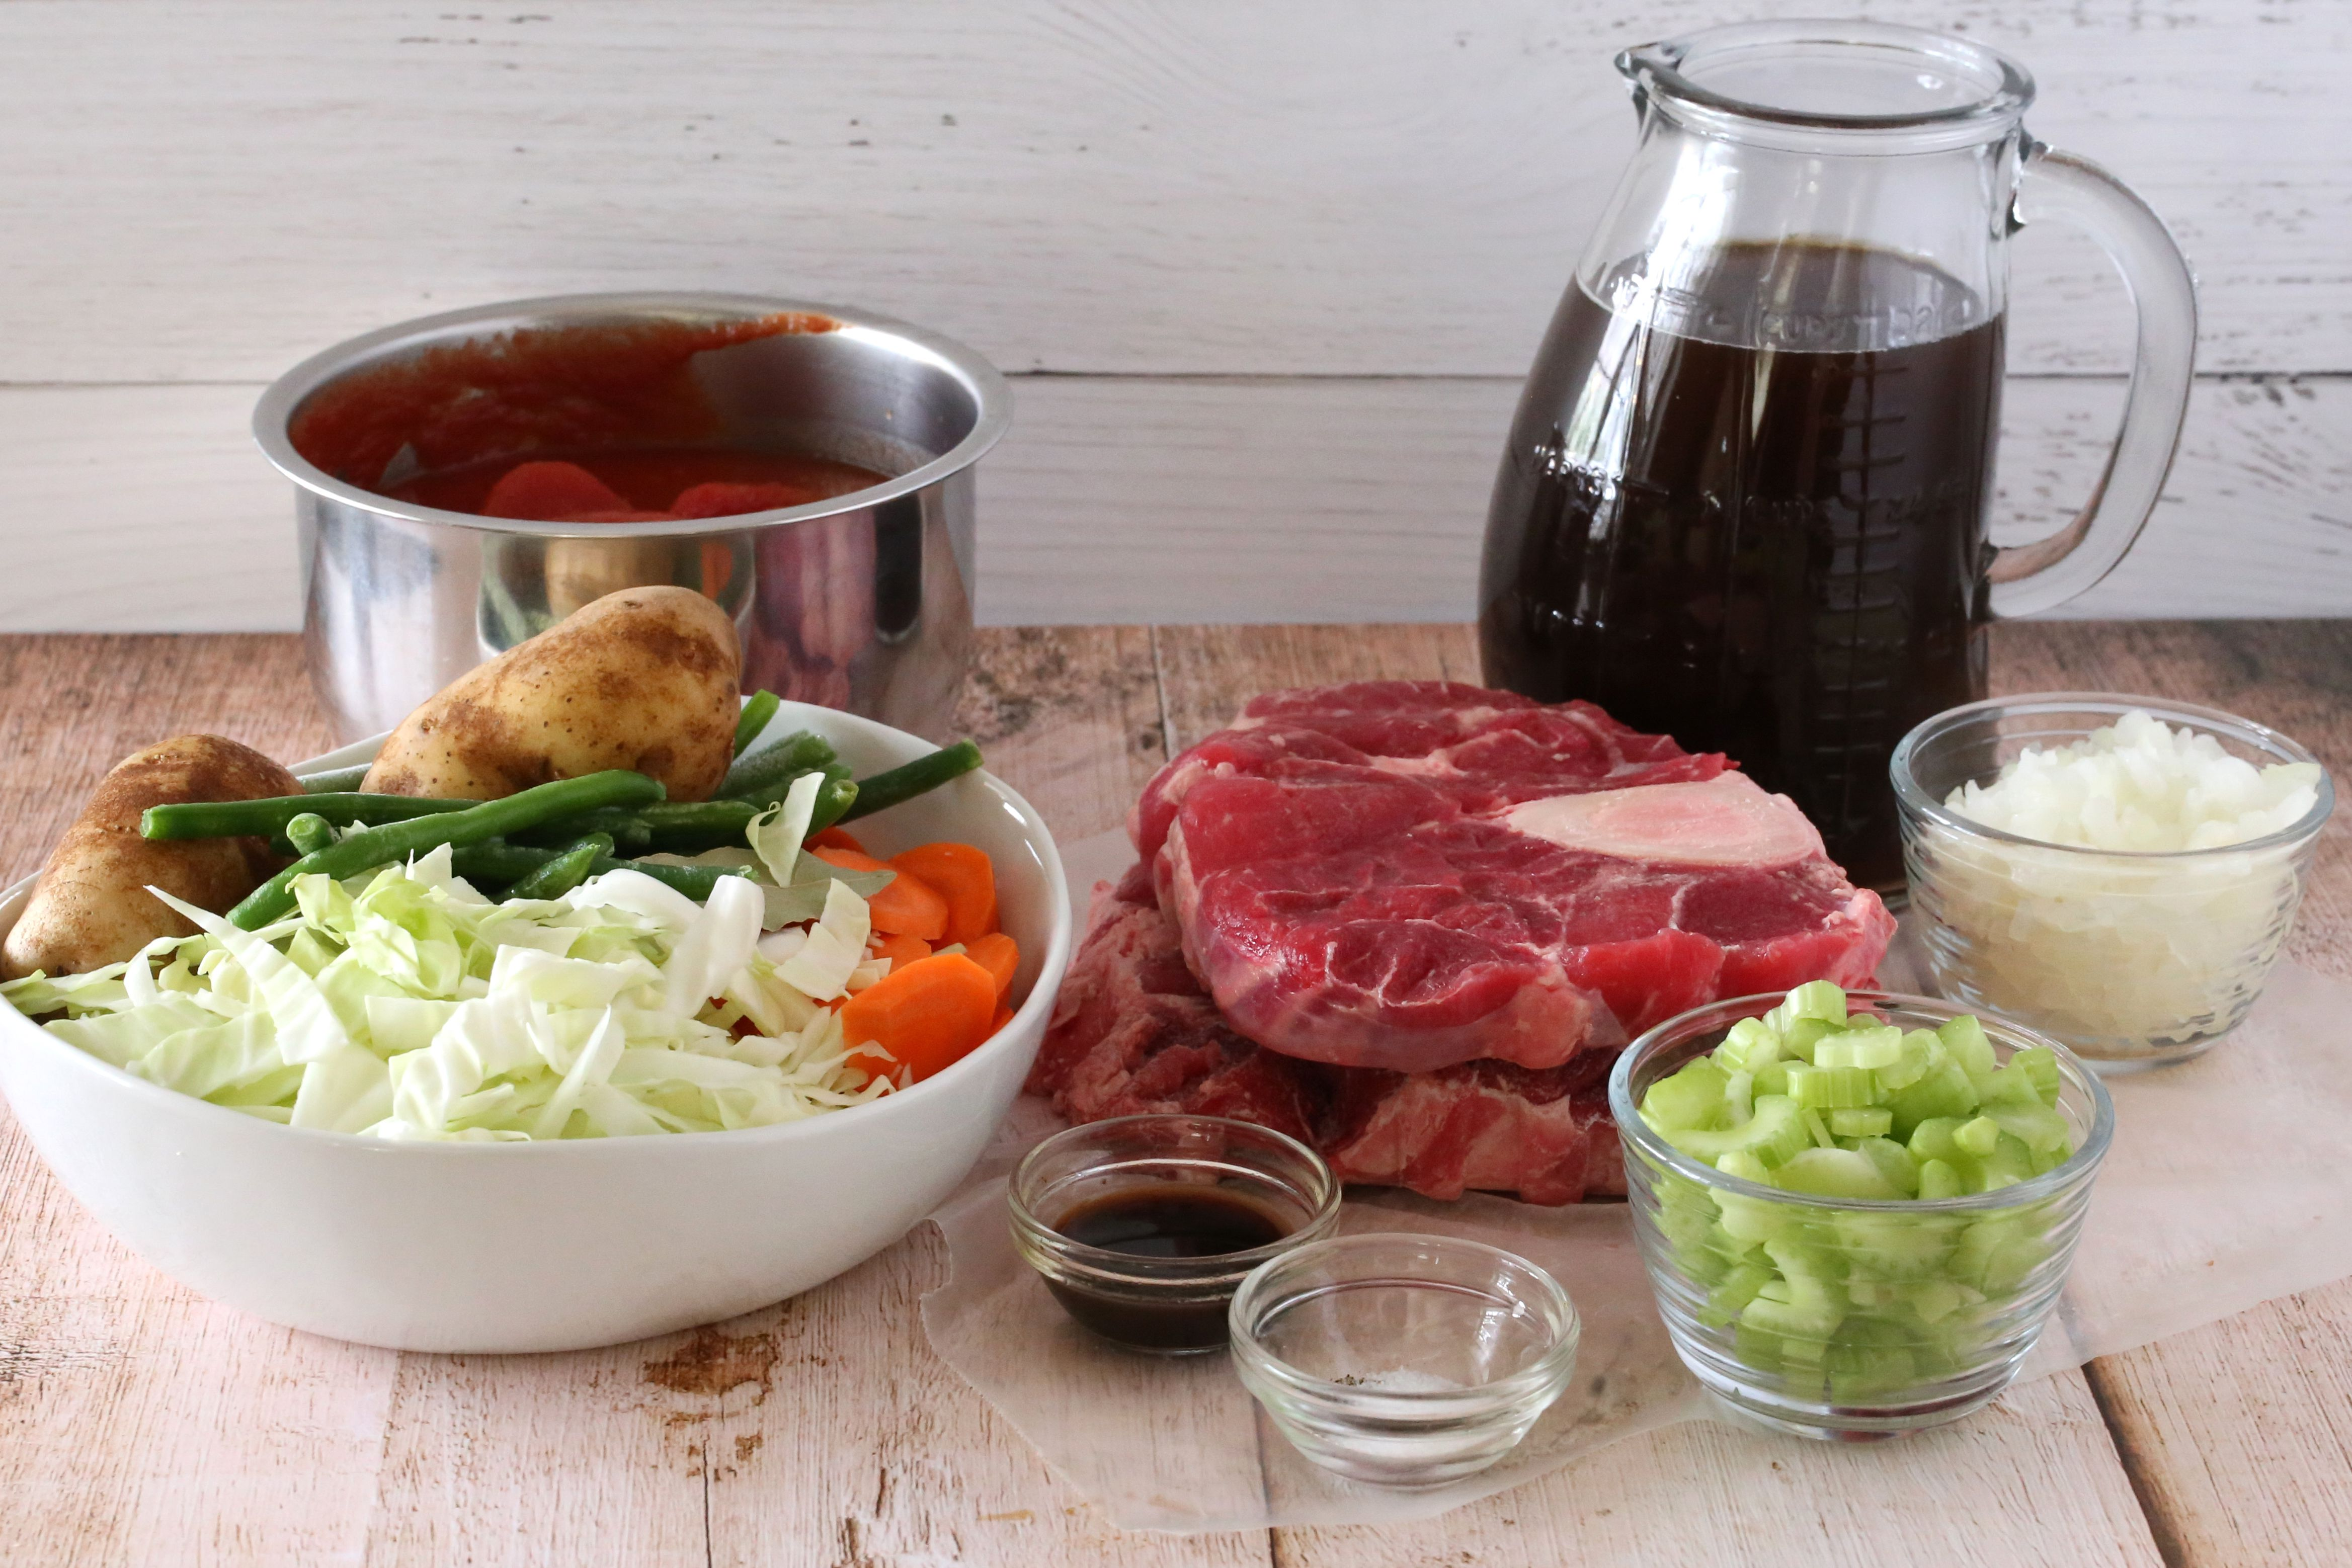 Ingredients for old-fashioned vegetable beef soup